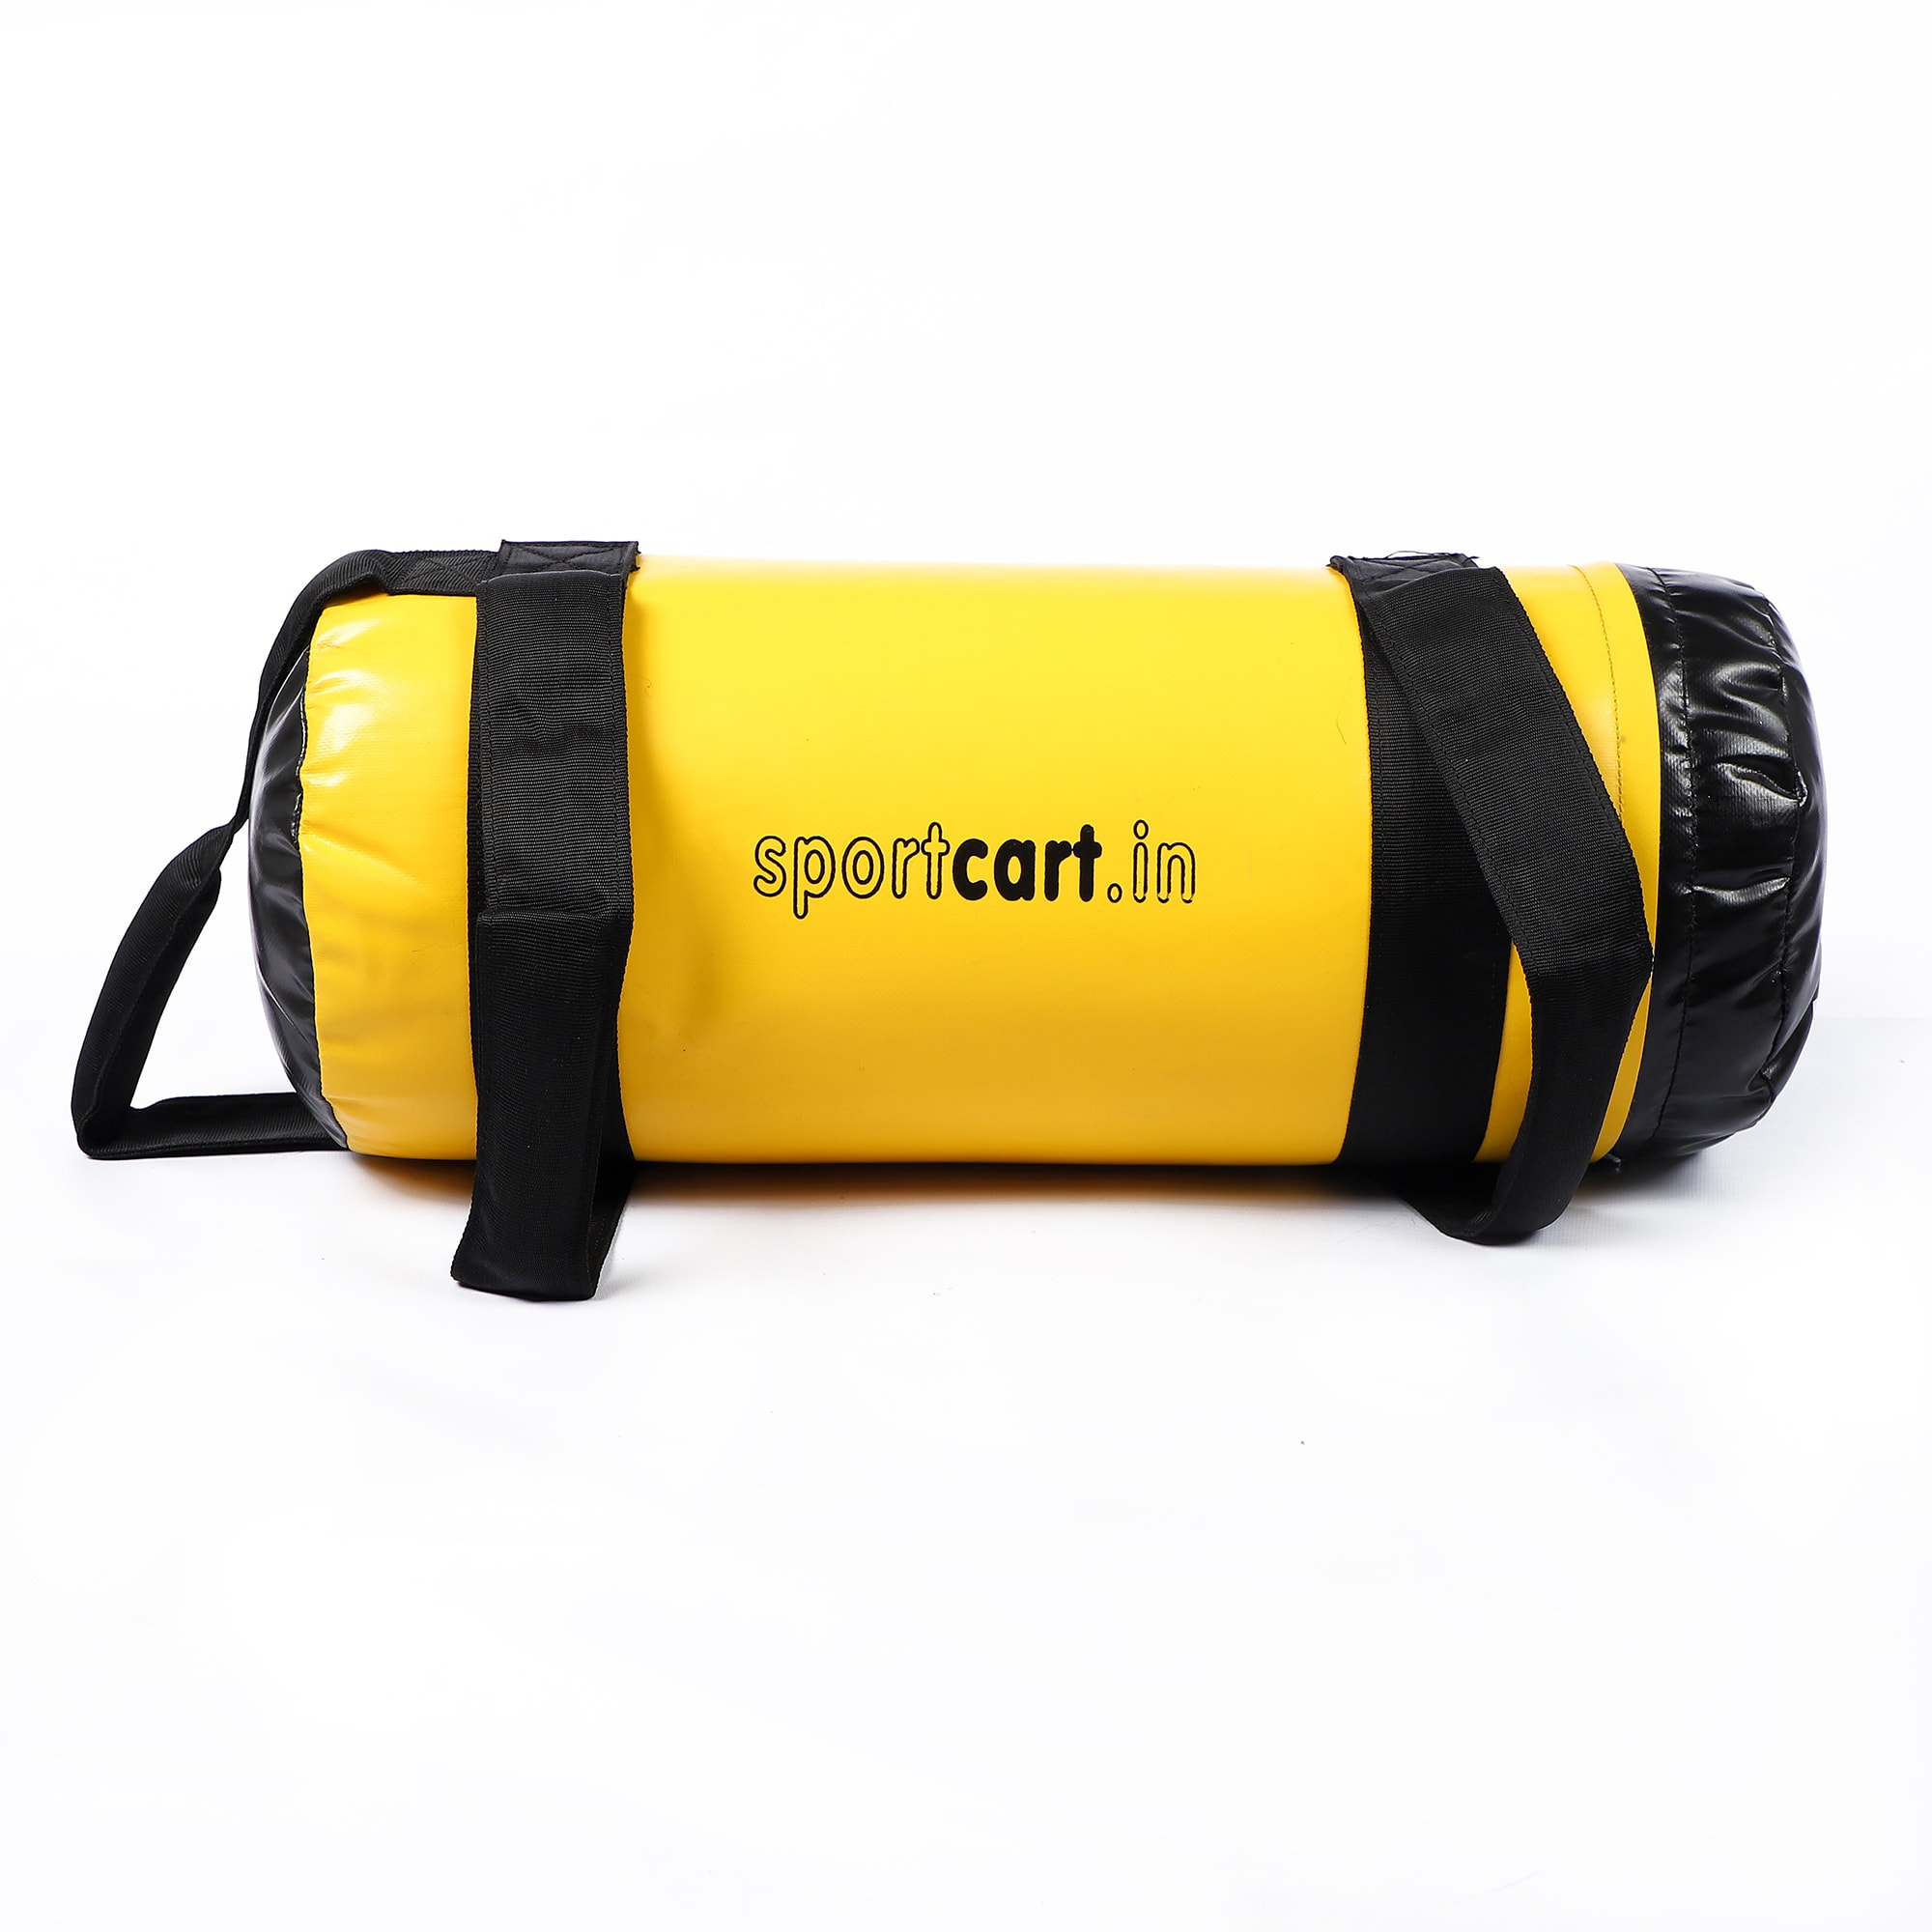 Sportcart.in Sand / Strength Bag - 5 Kg